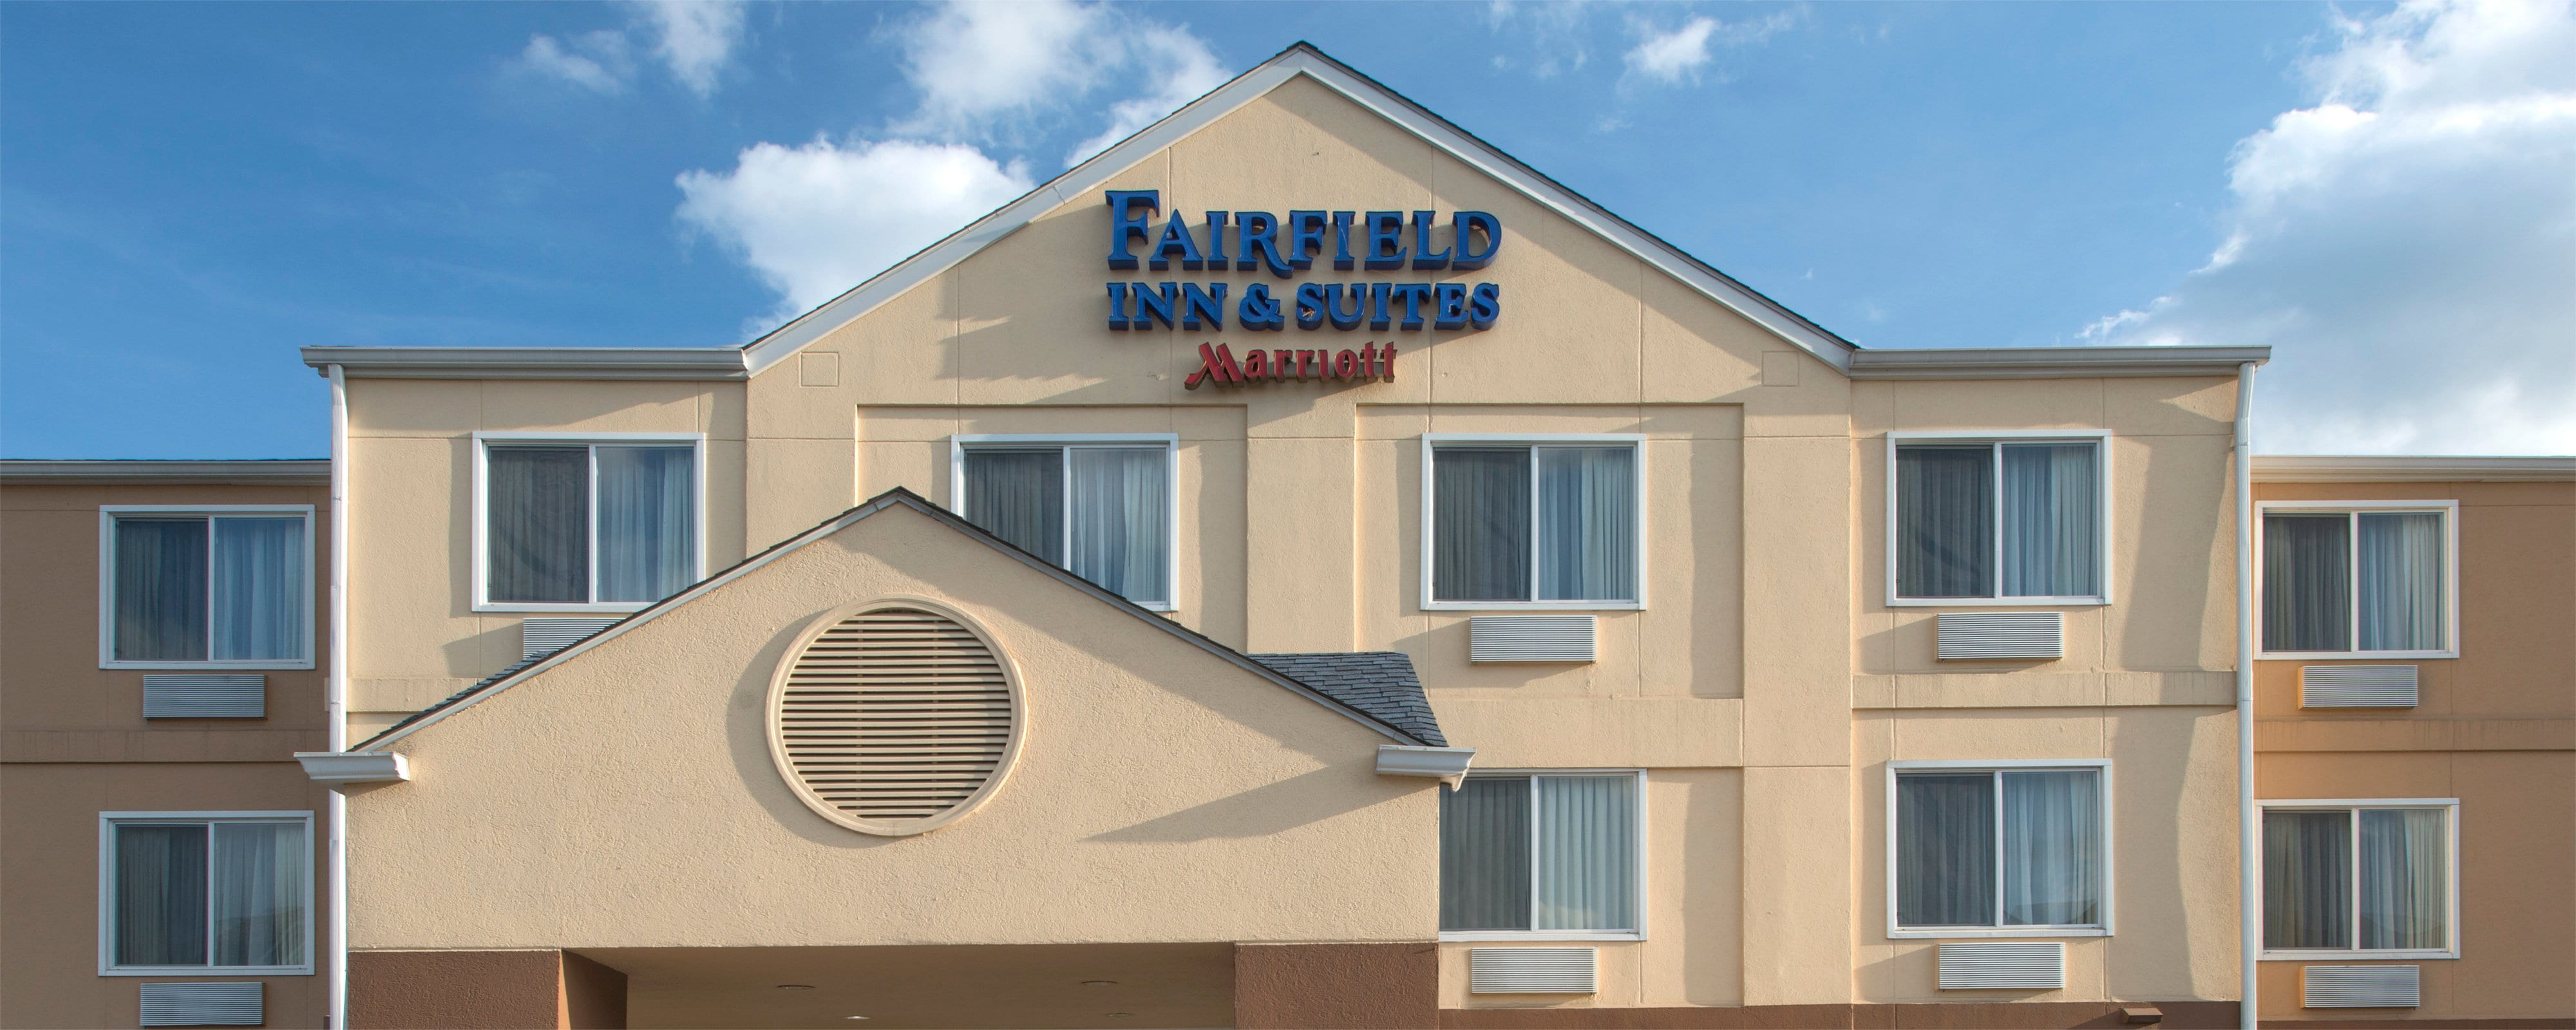 Fairfield Inn & Suites en Indianápolis